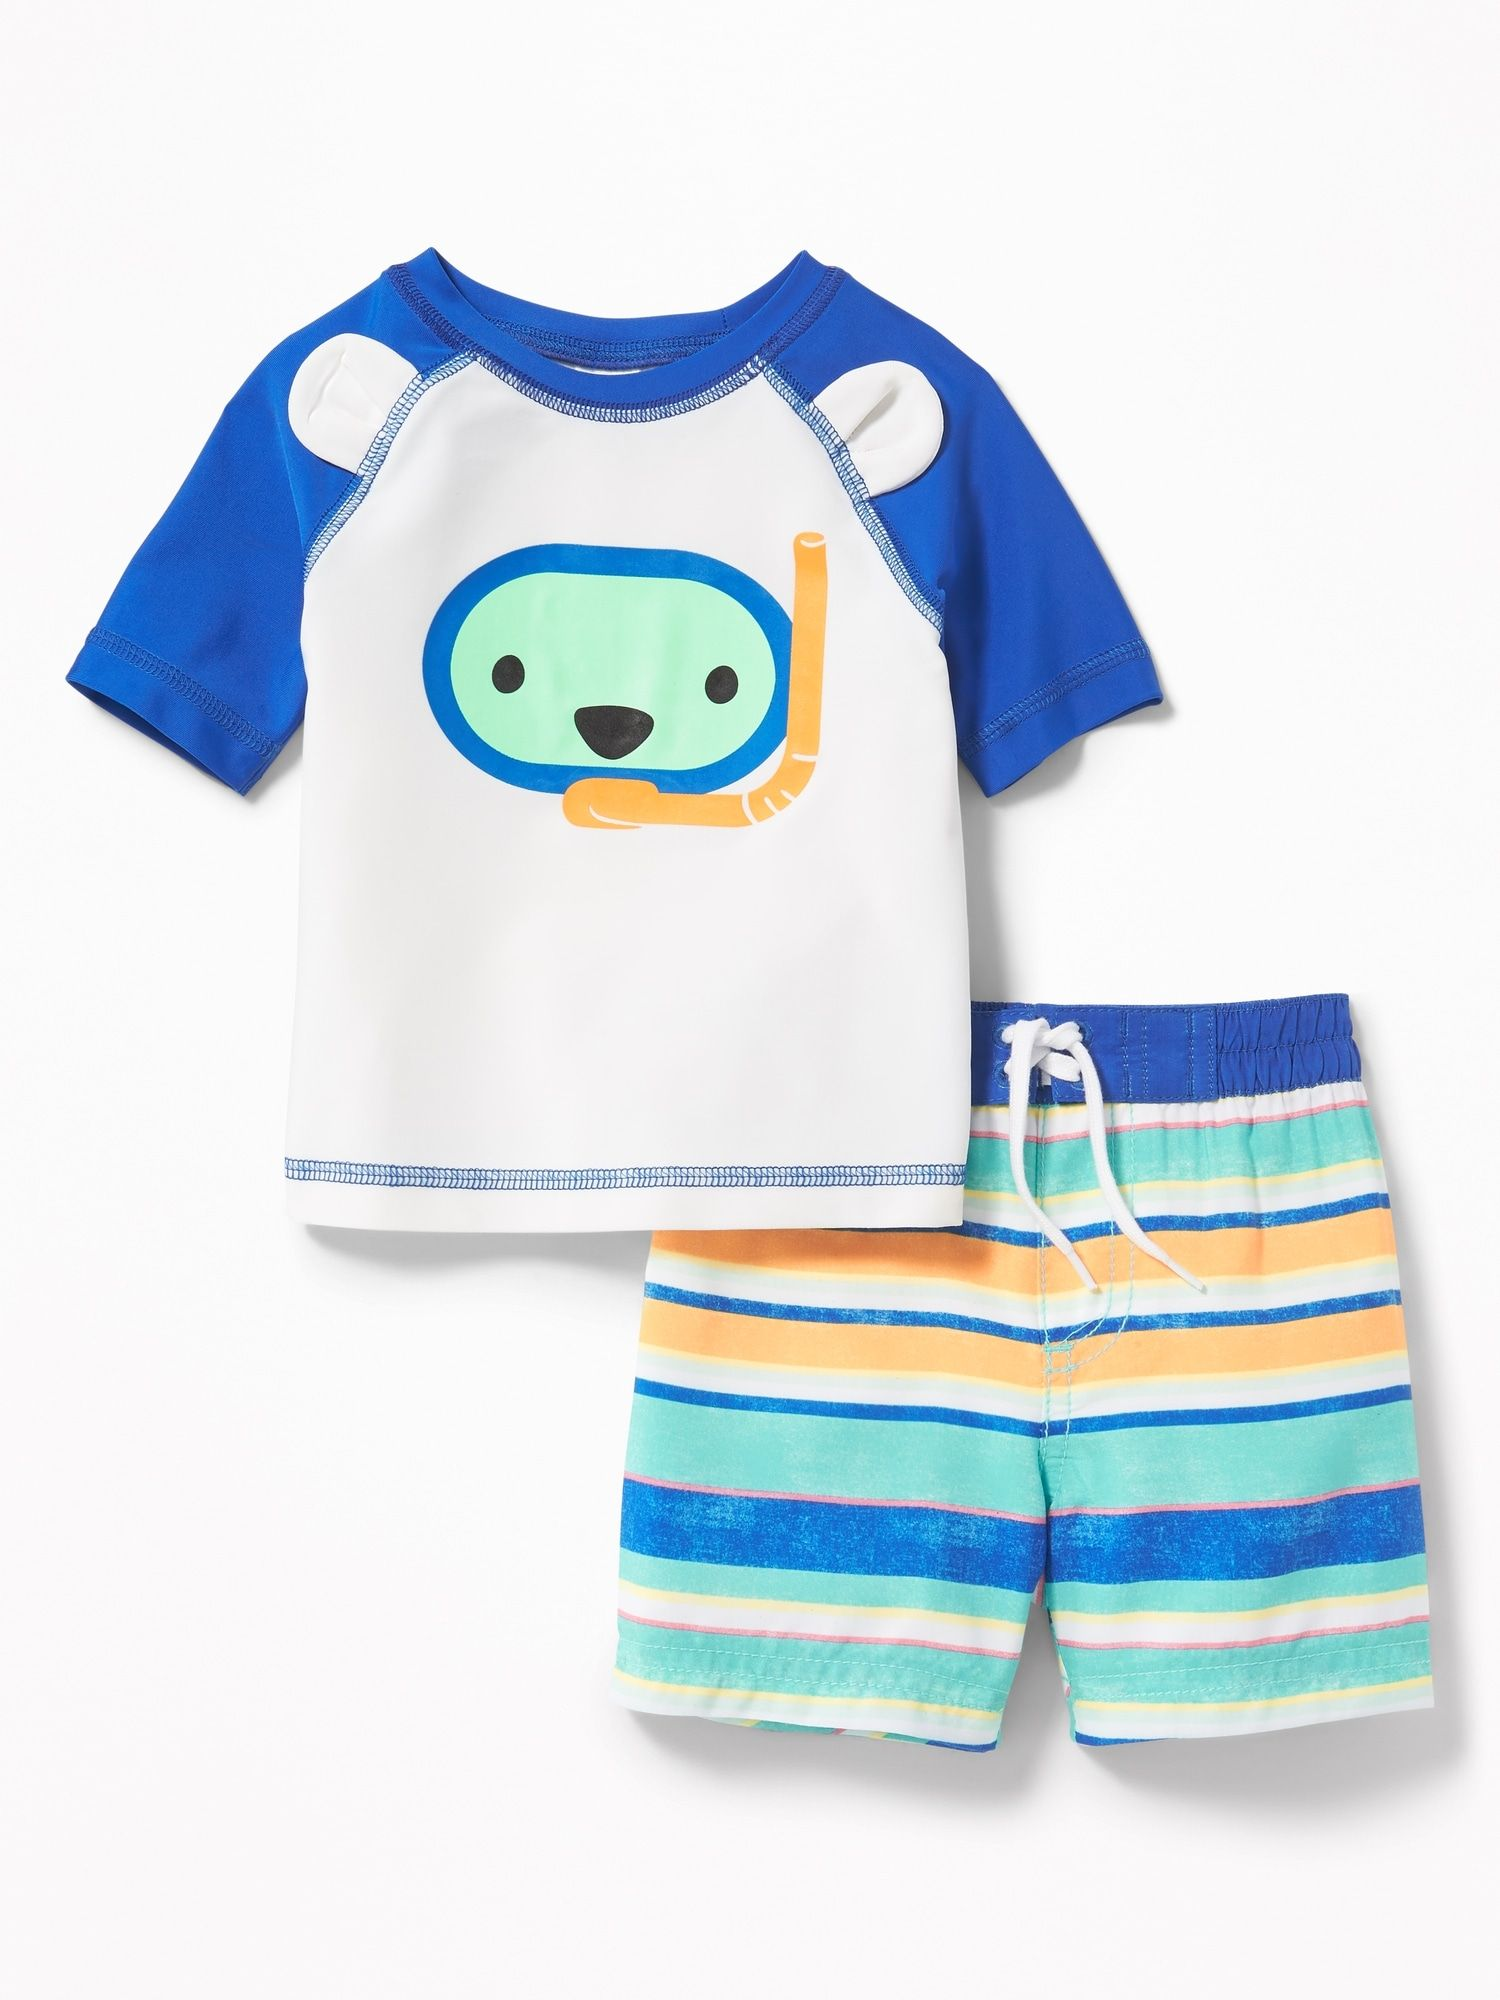 6e2fb52f5 product photo Swim Sets, Rash Guard, Hanging Dryer, Old Navy, Boy Outfits